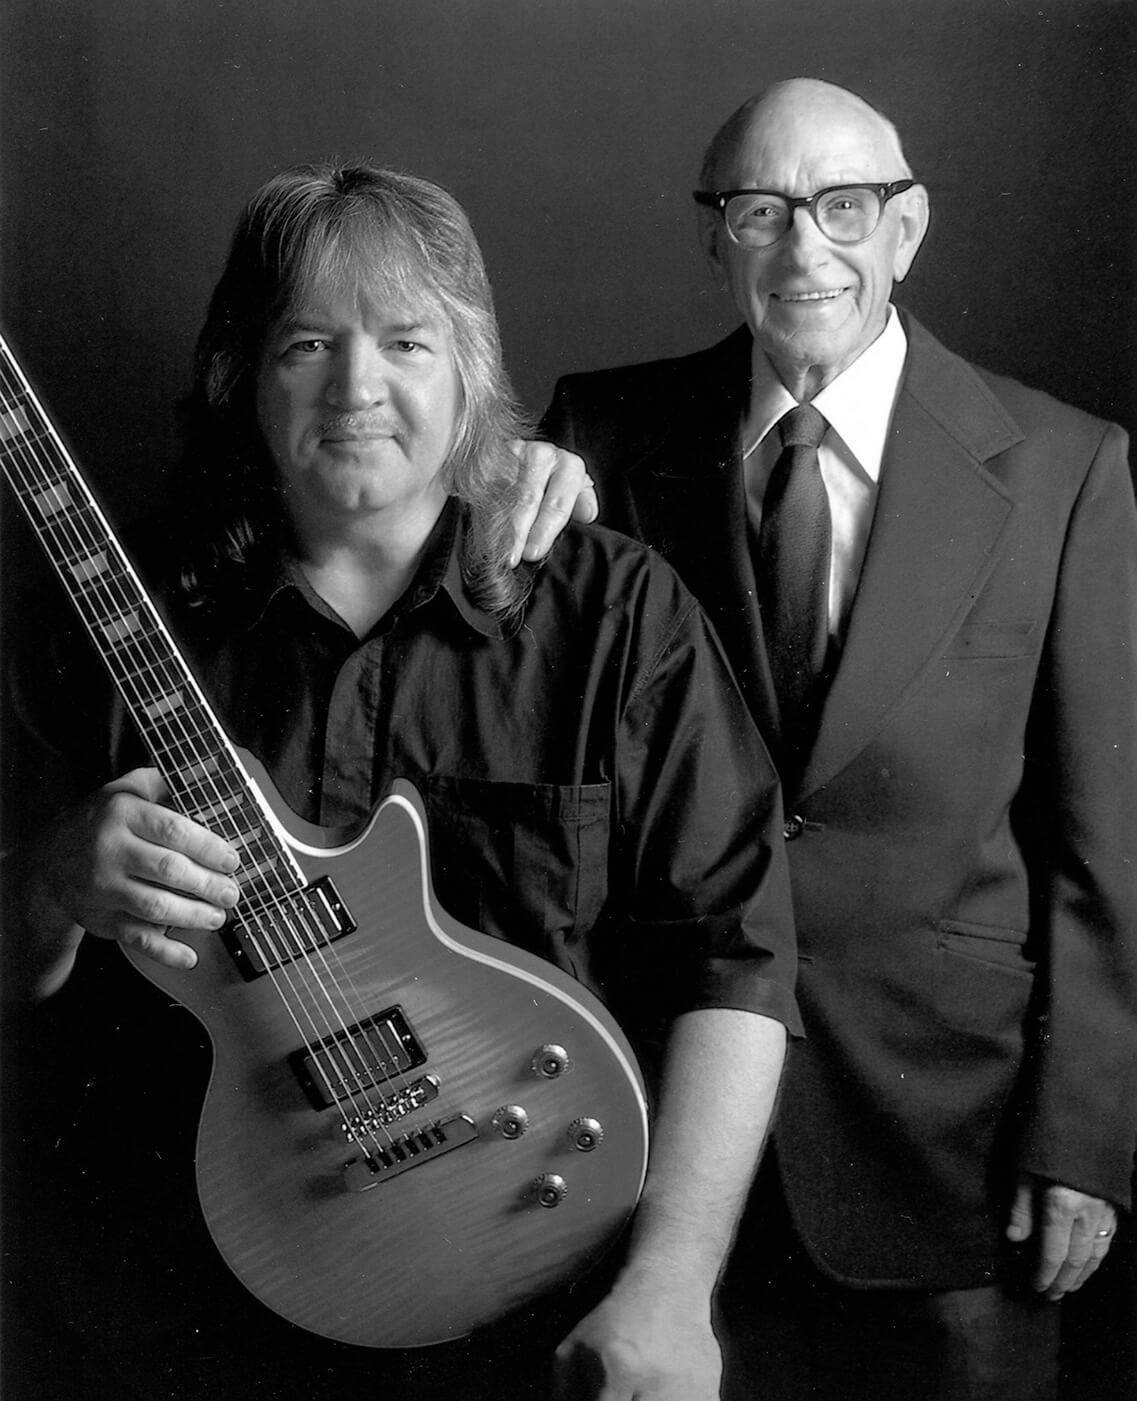 seth lover and seymour duncan